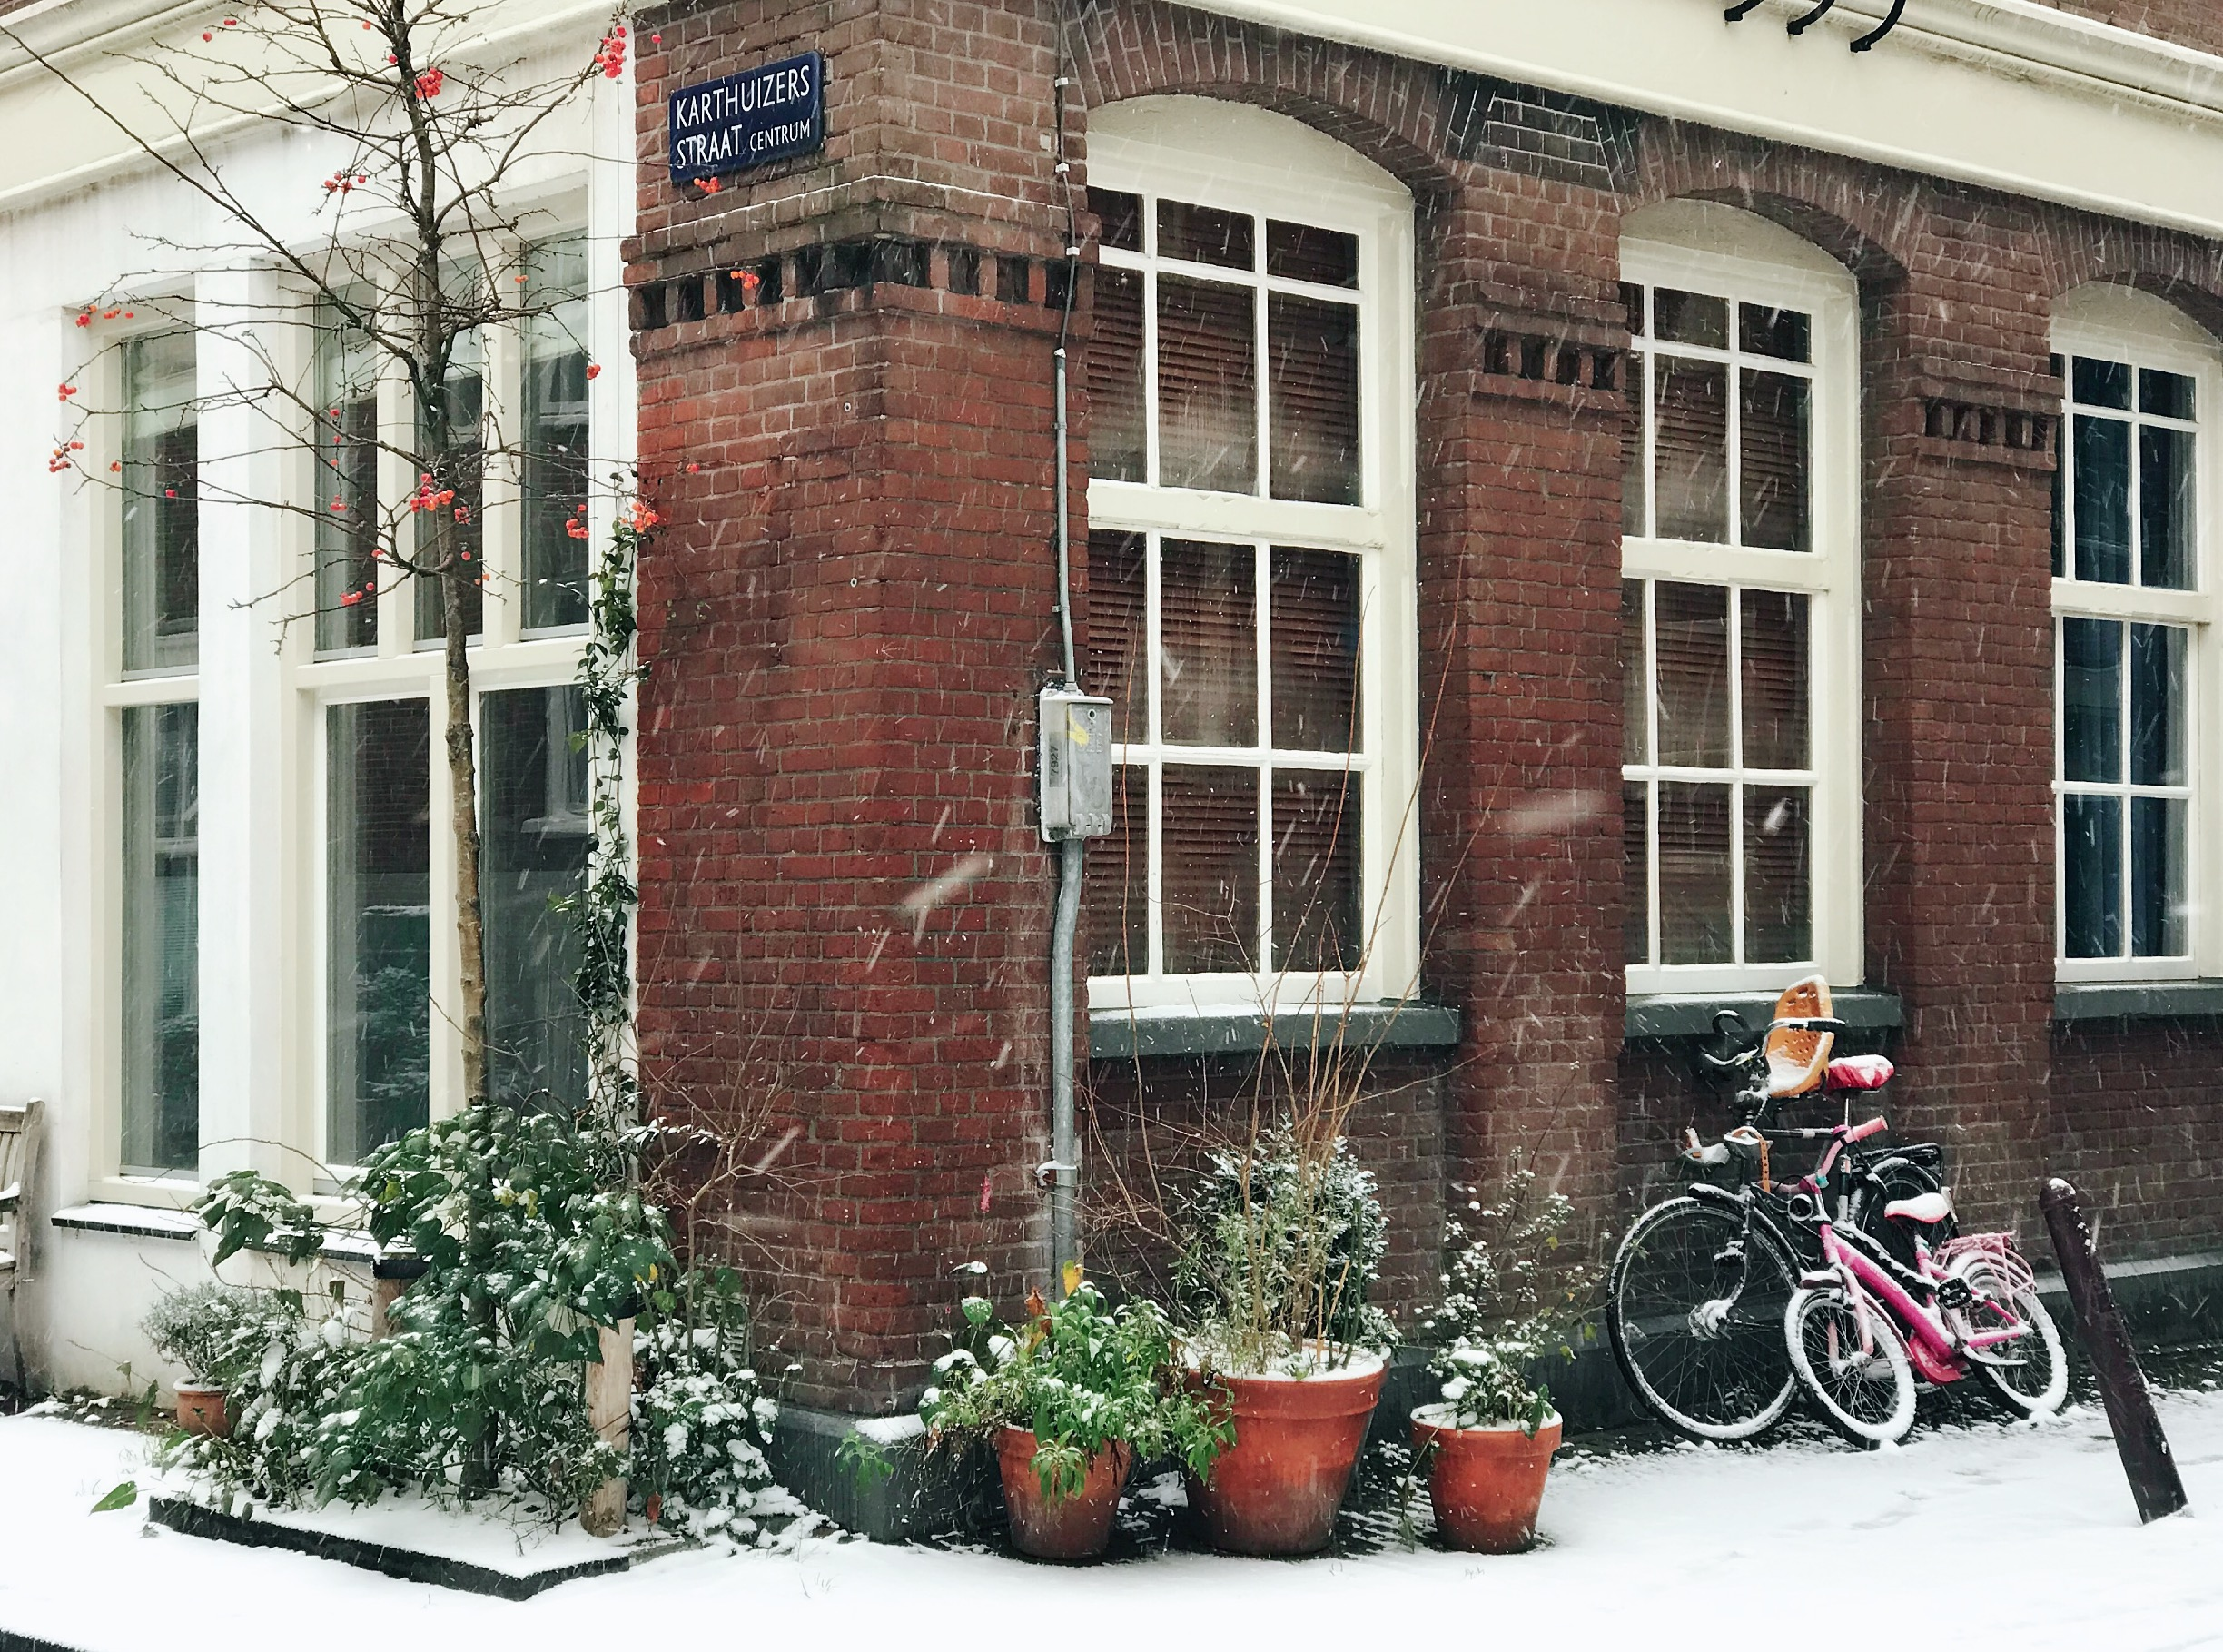 Stop the Press: There's Snow in Amsterdam!